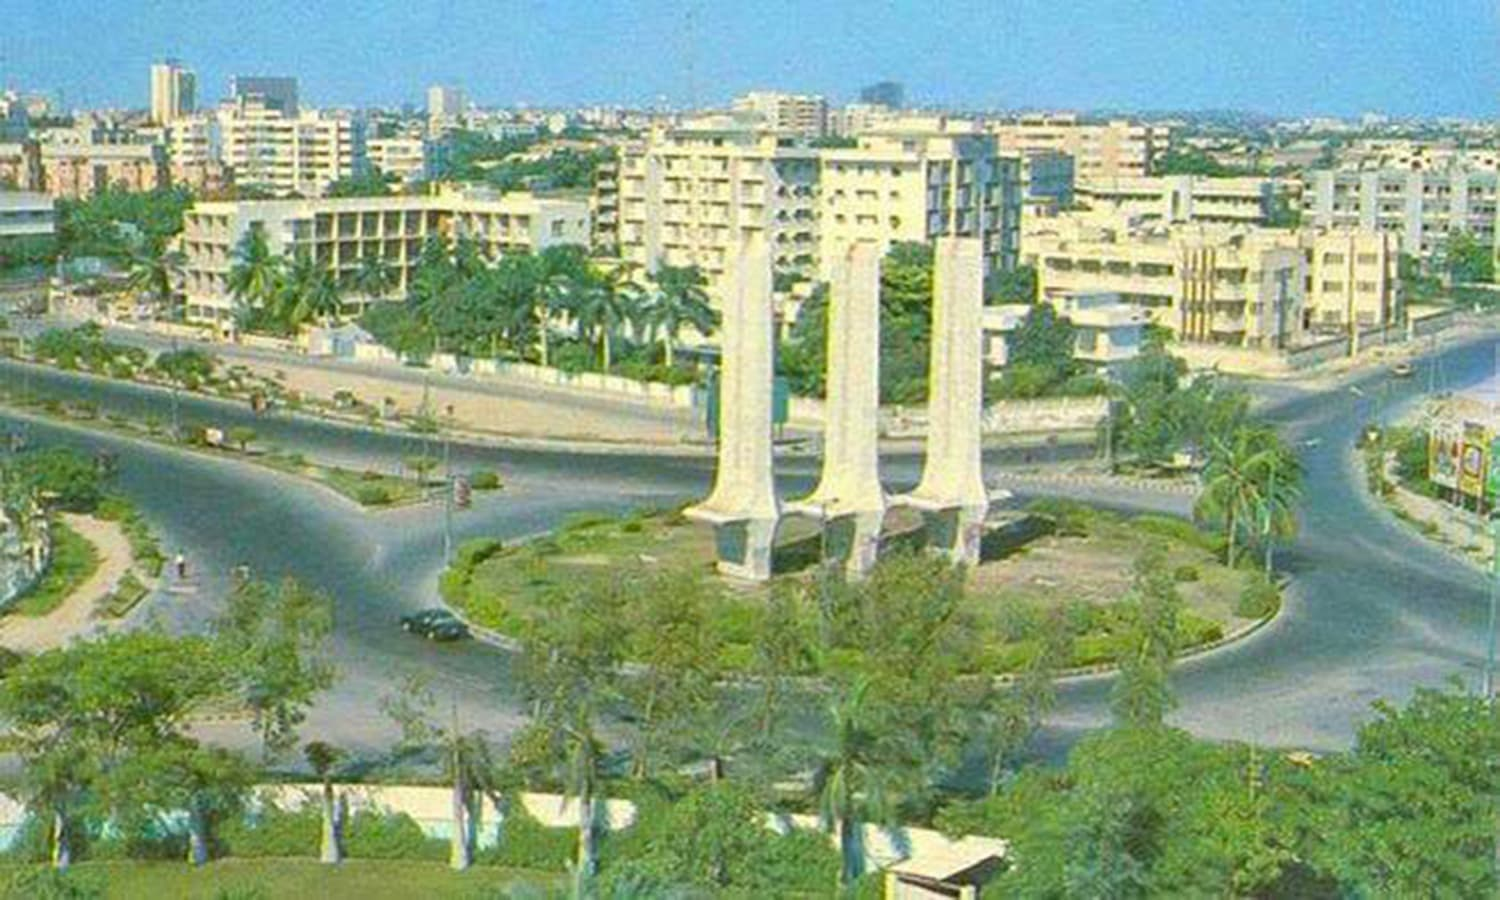 Karachi, 1974: The Bhutto regime did initiate a 'beautification project' in the city. But the project collapsed in 1977.(Photo: Archive 150)